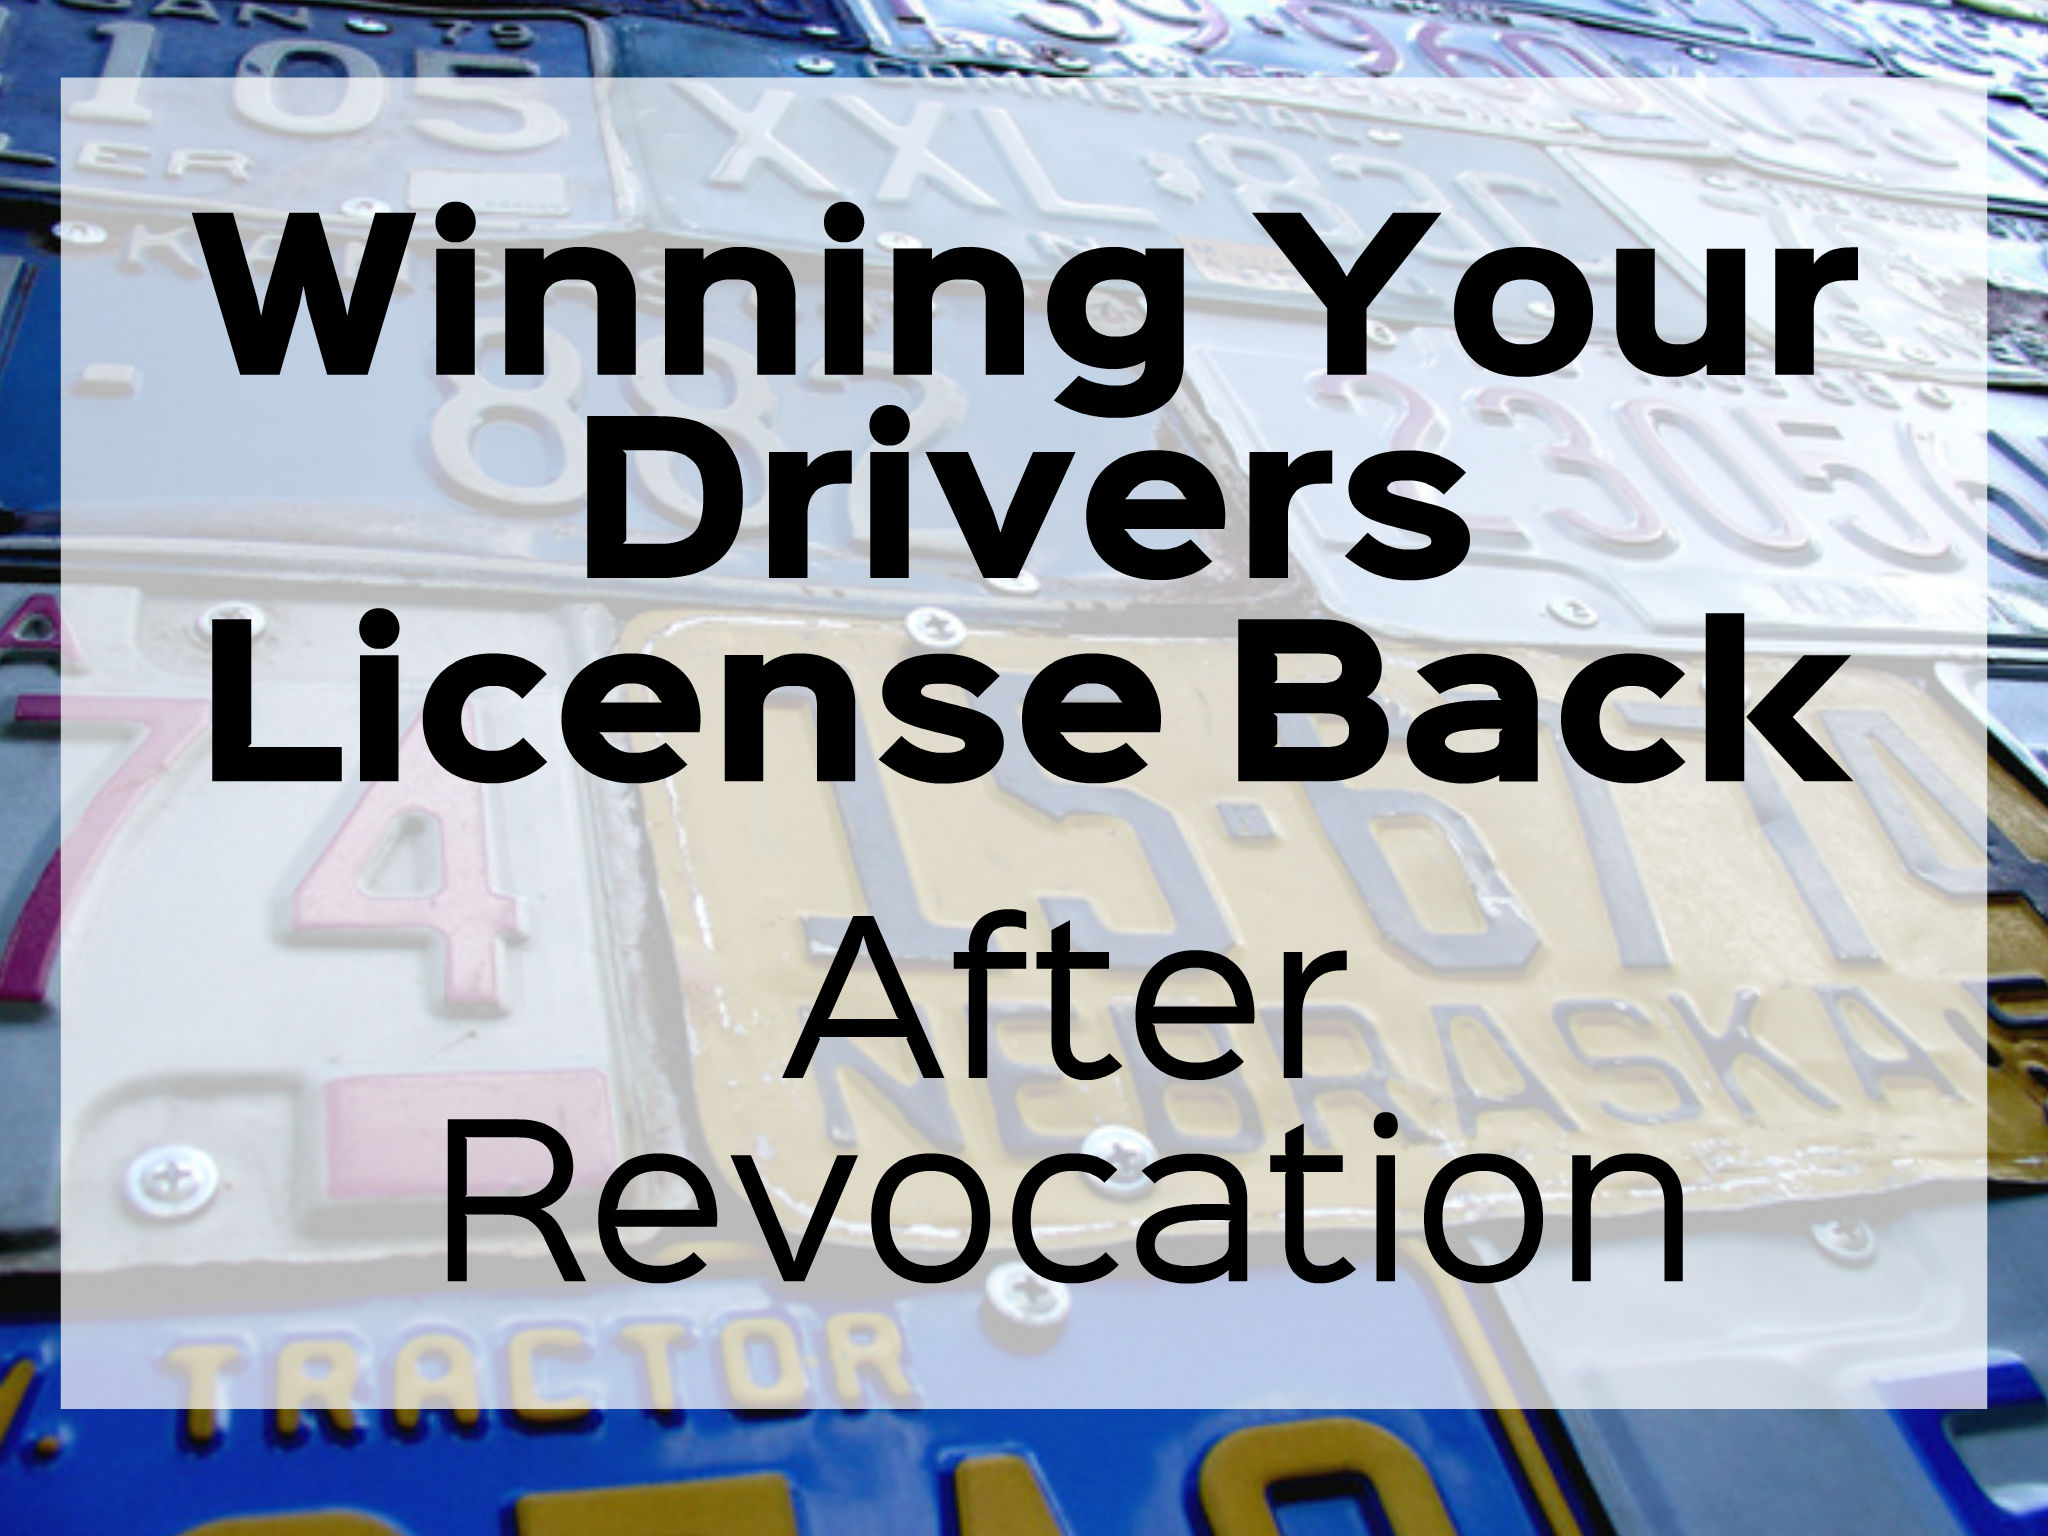 """If you have lost your driver's license following a conviction of an OWI let me start by saying winning your license back after having it revoked will have nothing to do with your 'need' for a license. Yes, while we all may 'need' a license to secure/maintain employment and provide transportation in the end, this 'need' will actually have very little to do with your actual ability to win your drivers license back.  Before you can ever win your license back, you have to be legally eligible to file a license restoration appeal. """"Eligibility"""" meaning legally able"""